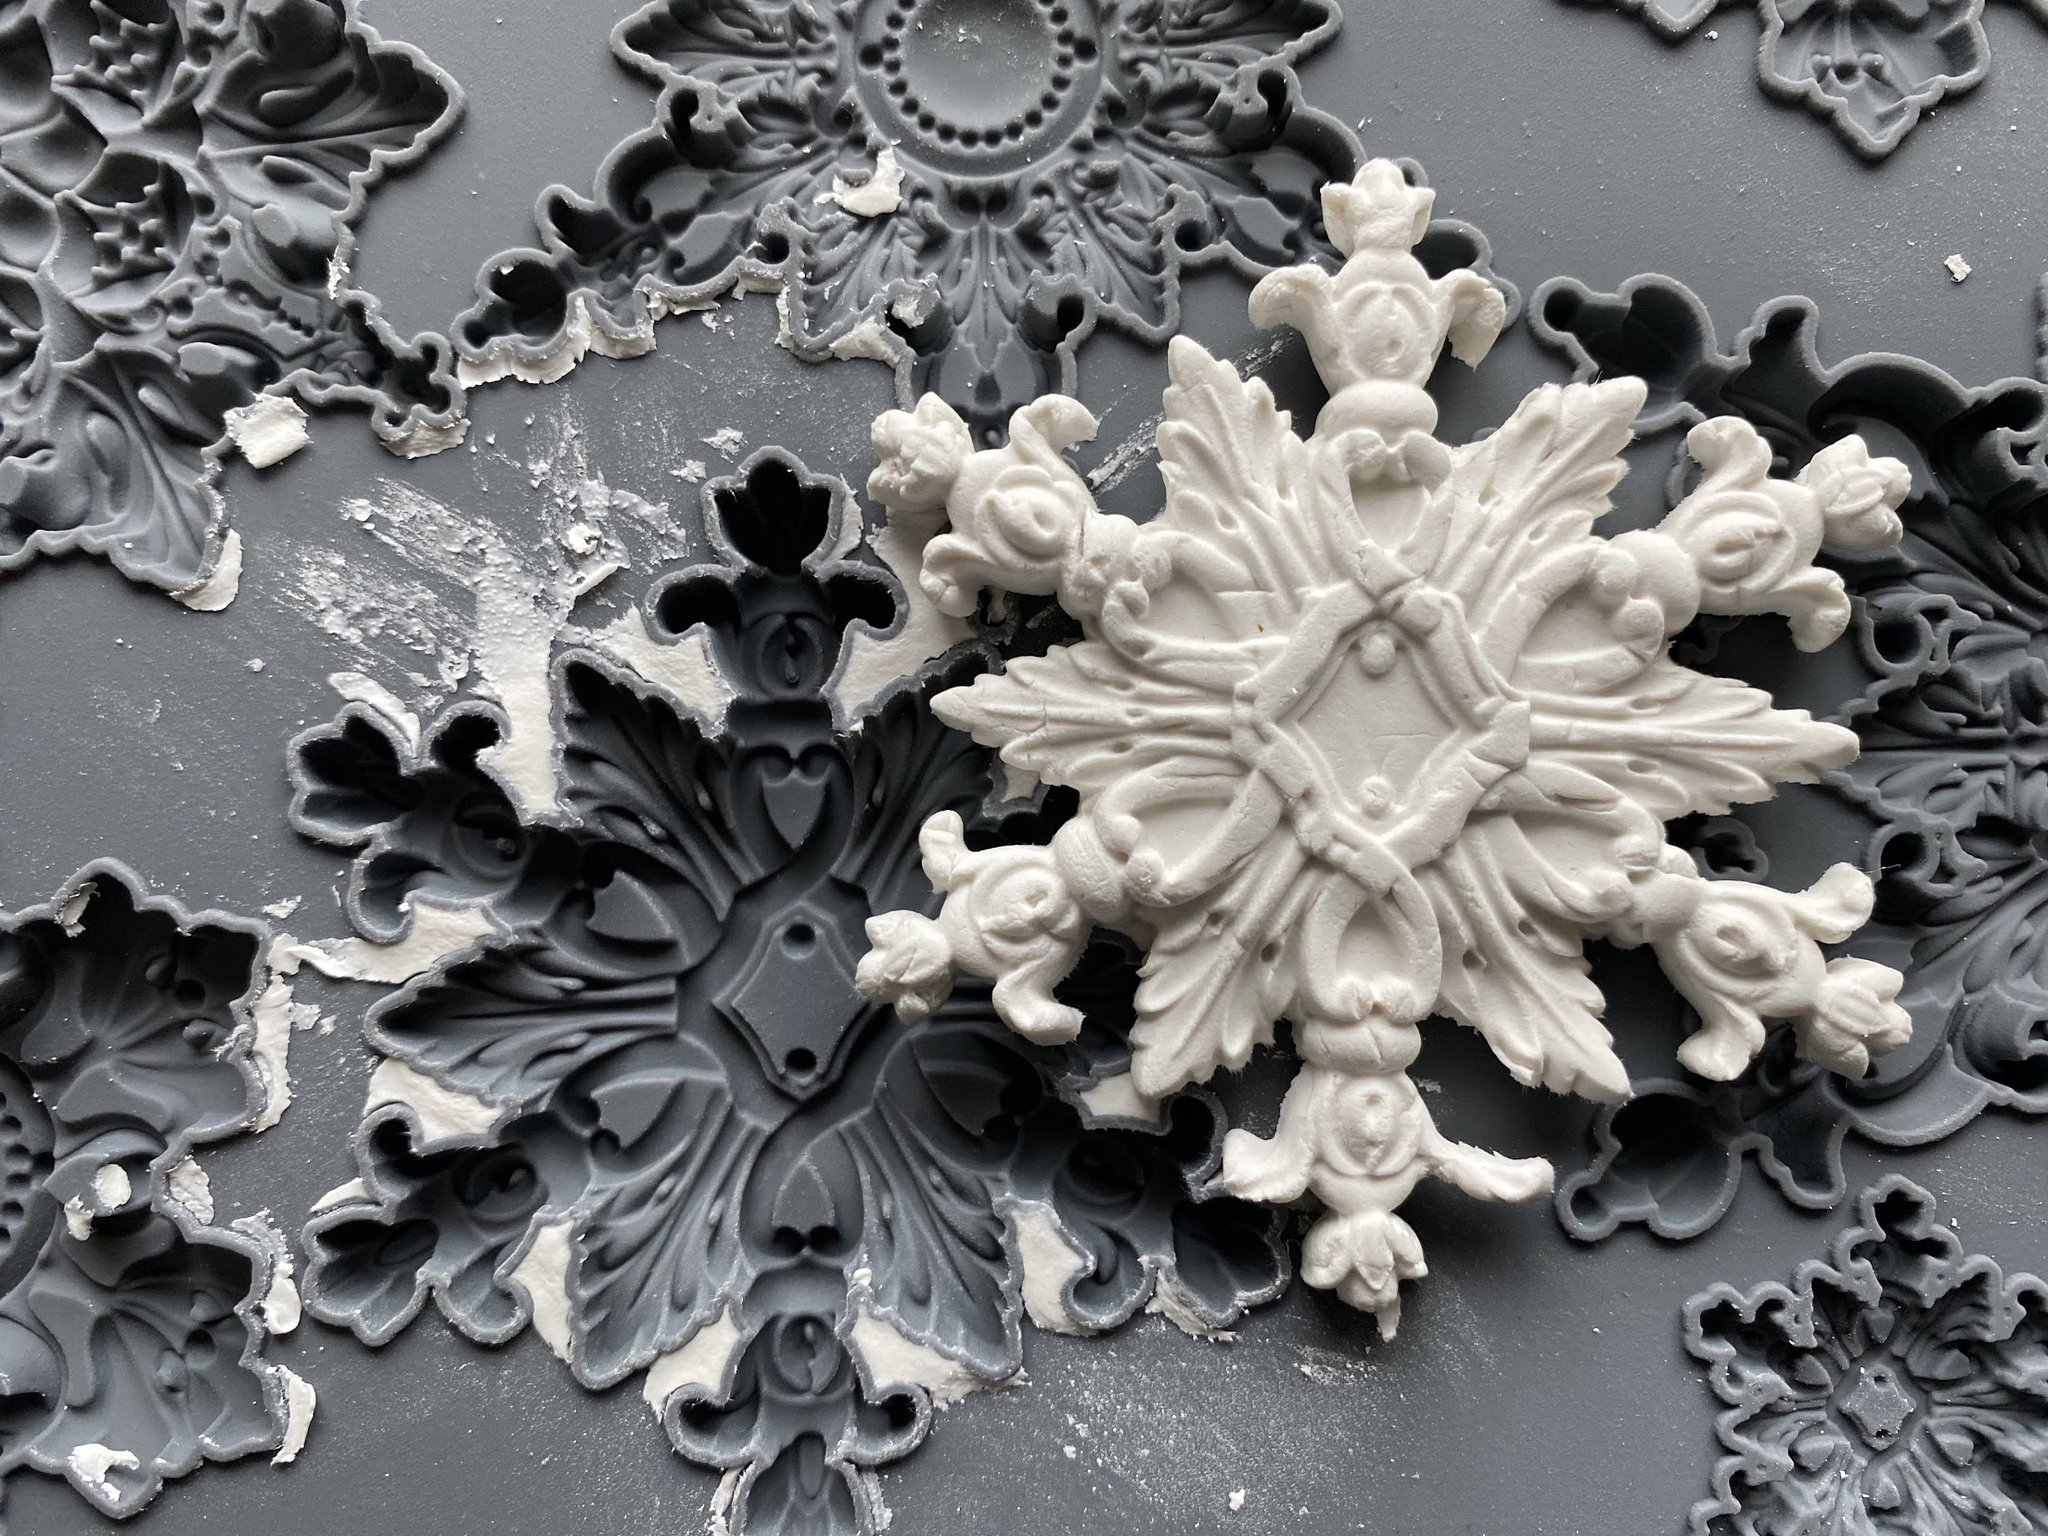 Have fun adding texture to your projects with these Iron Orchid Designs Decor Moulds - Snowflake | www.raggedy-bits.com | #raggedybits #IOD #Snowflake #texture #DIY #Moulds